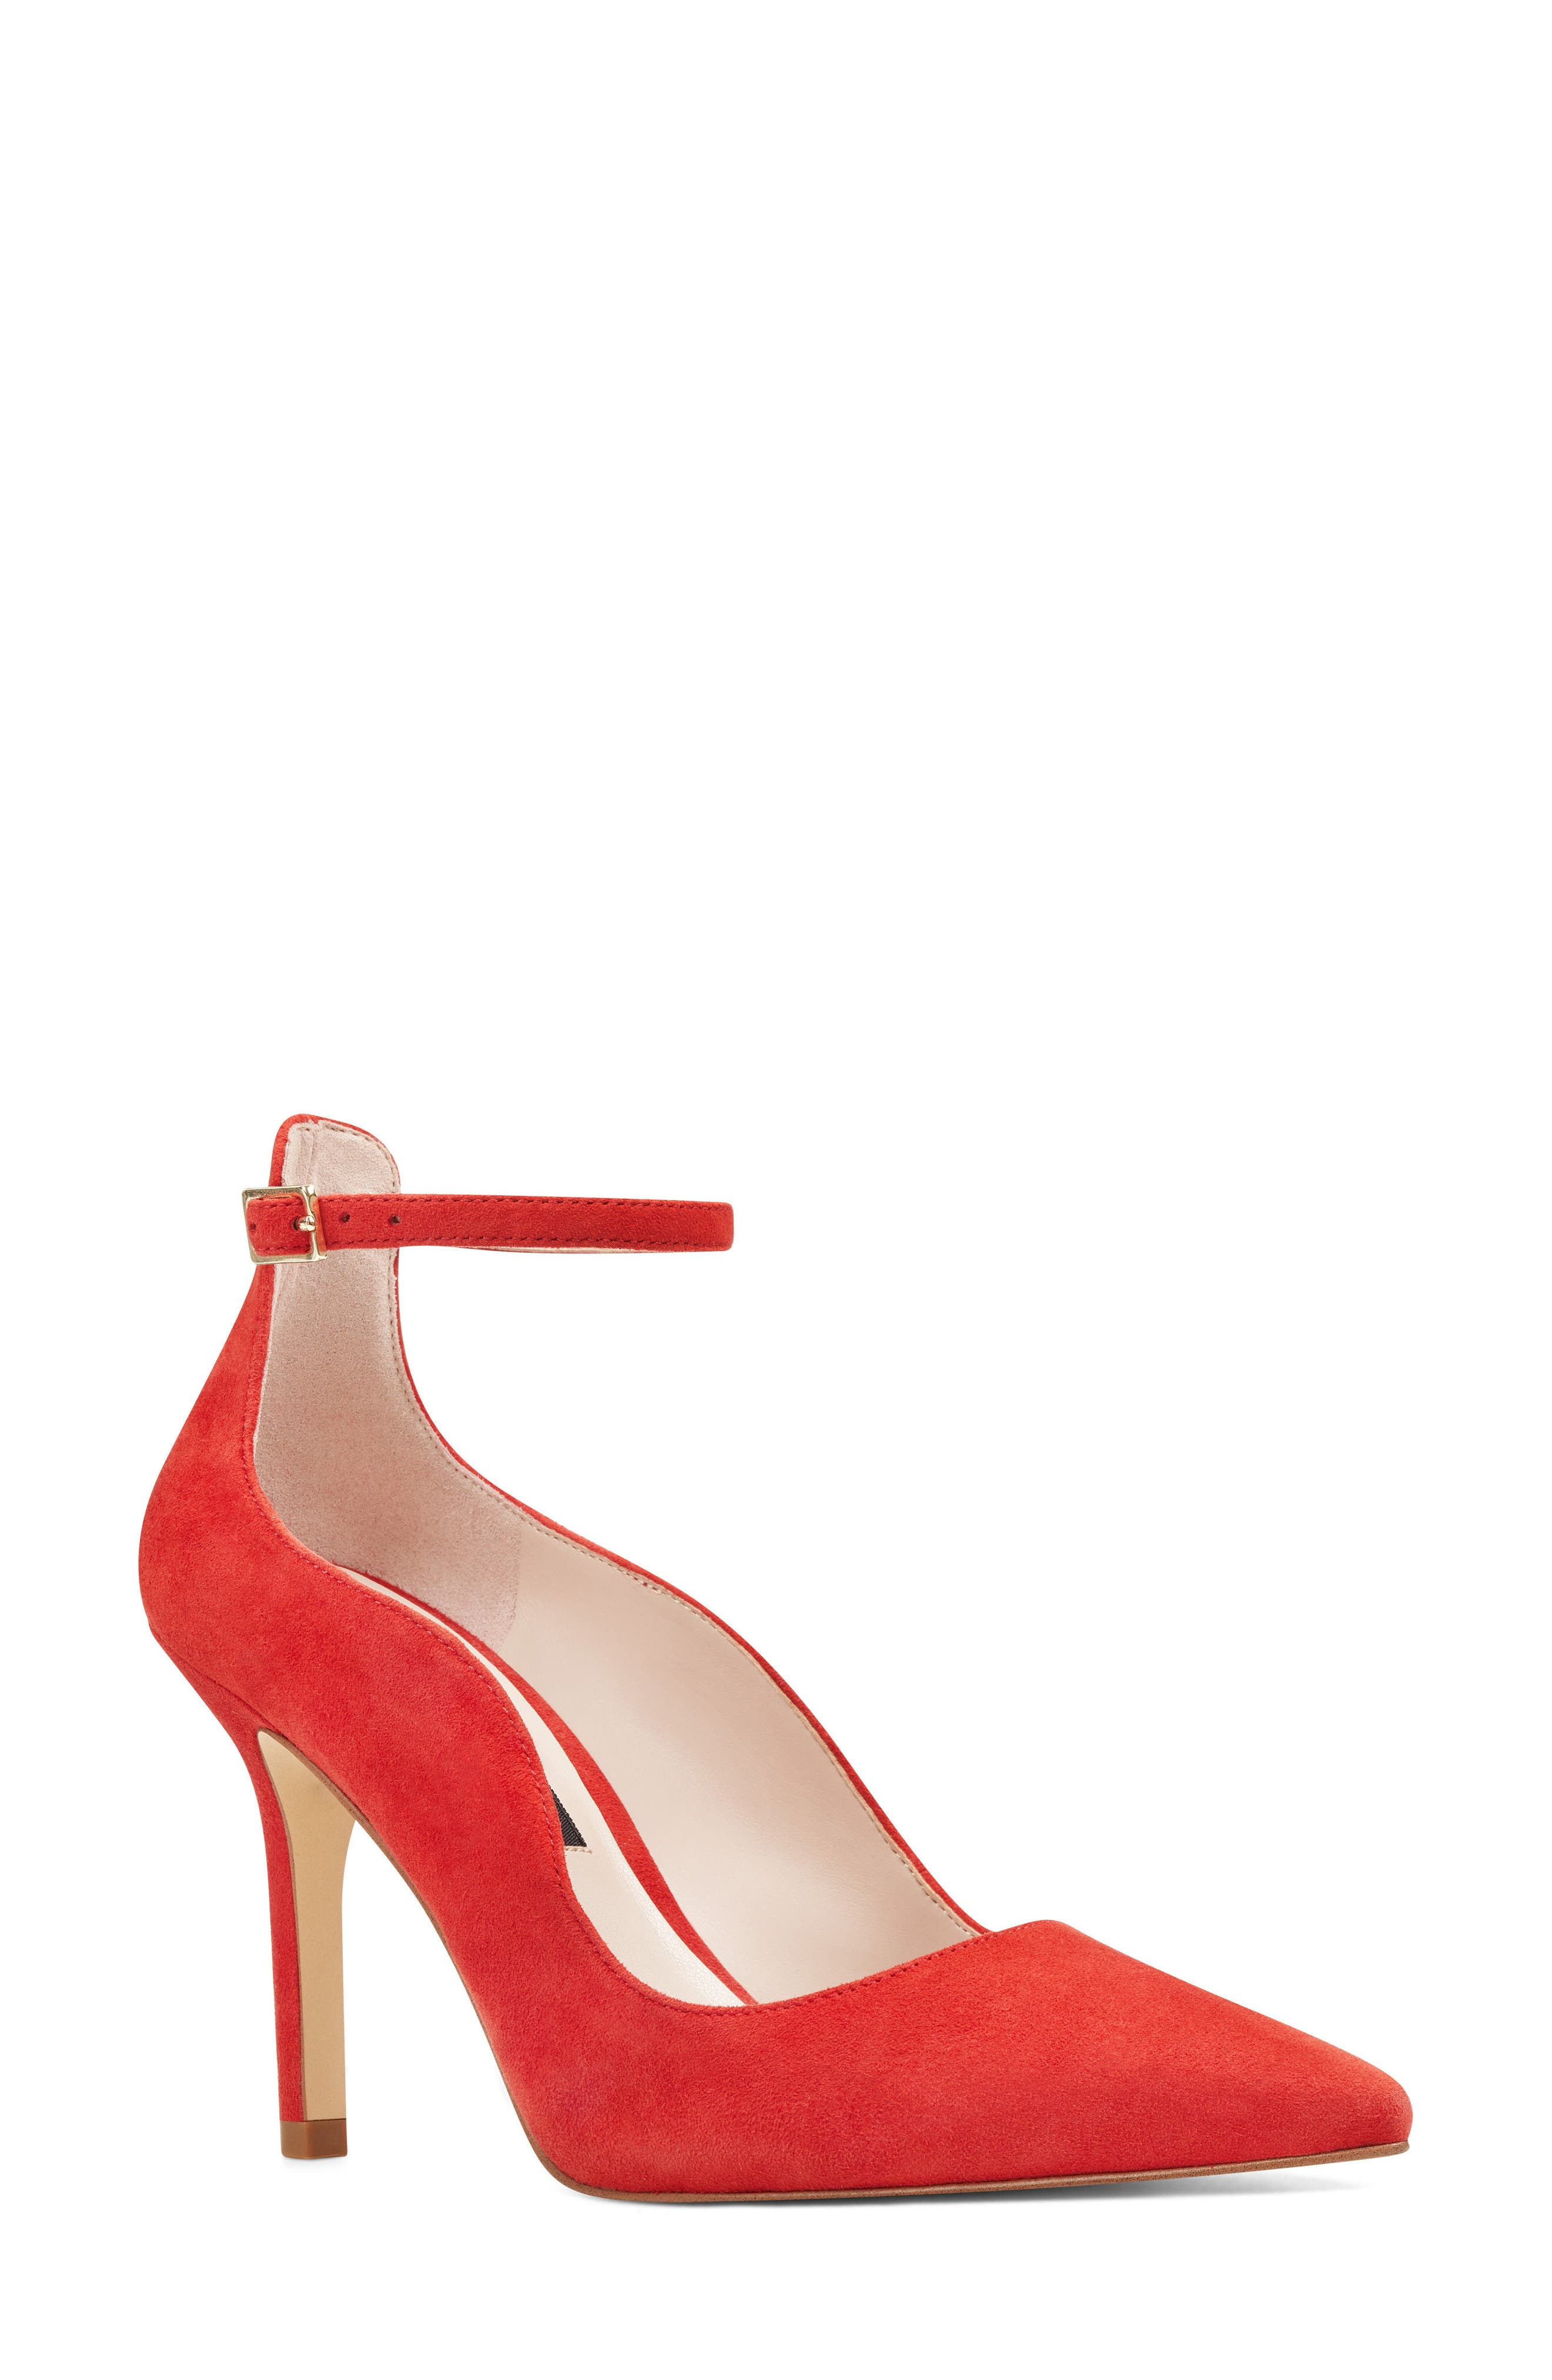 Marquisha Scalloped Ankle Strap Pump,                         Main,                         color, Red Suede